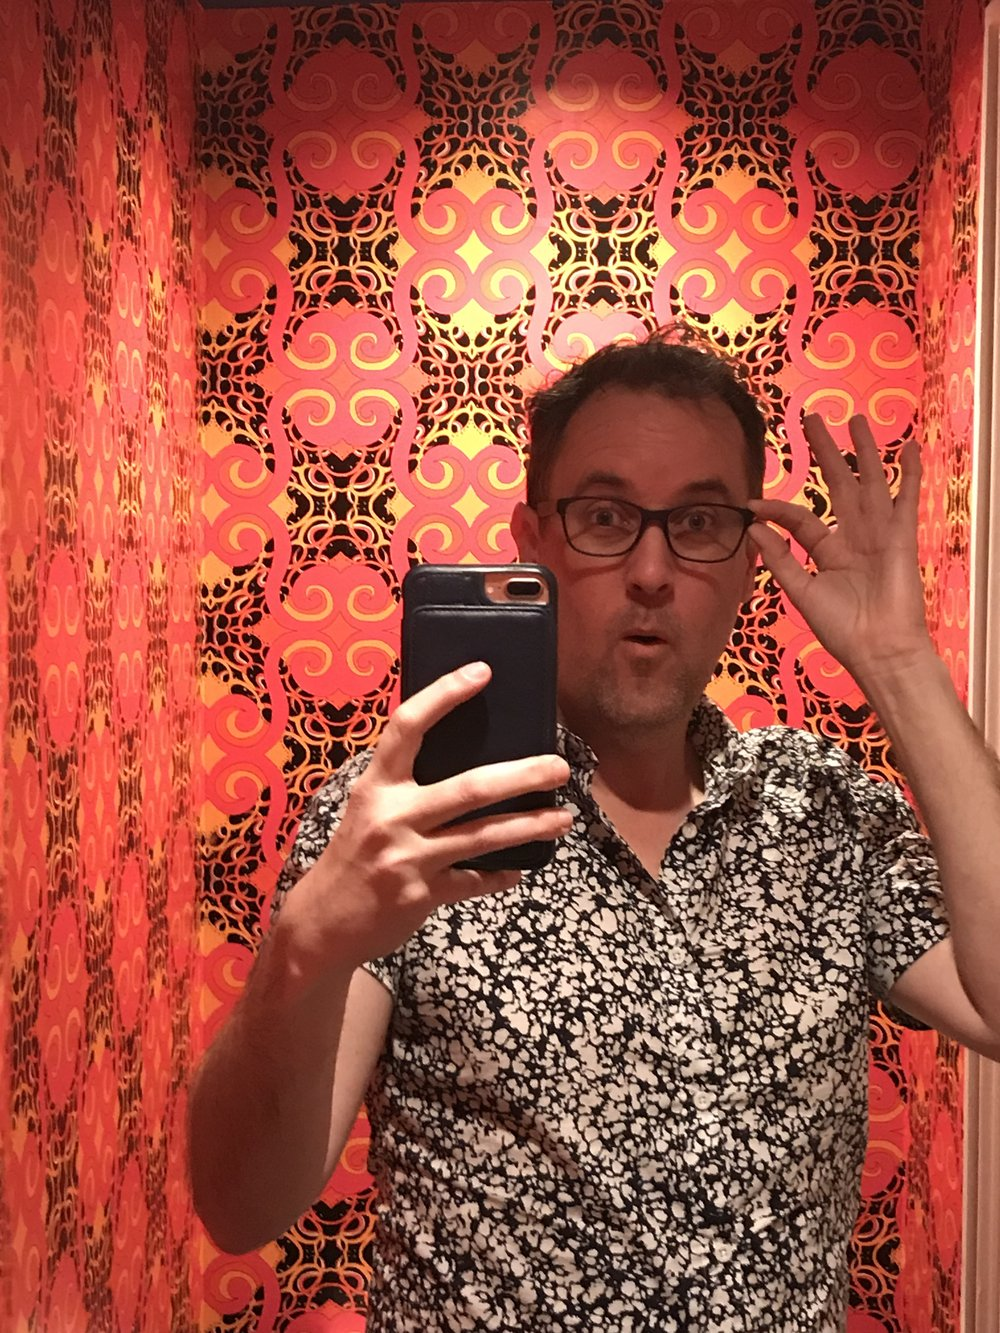 Me posing with wallpaper by my good friend Sean Yseult from yseultdesigns.com